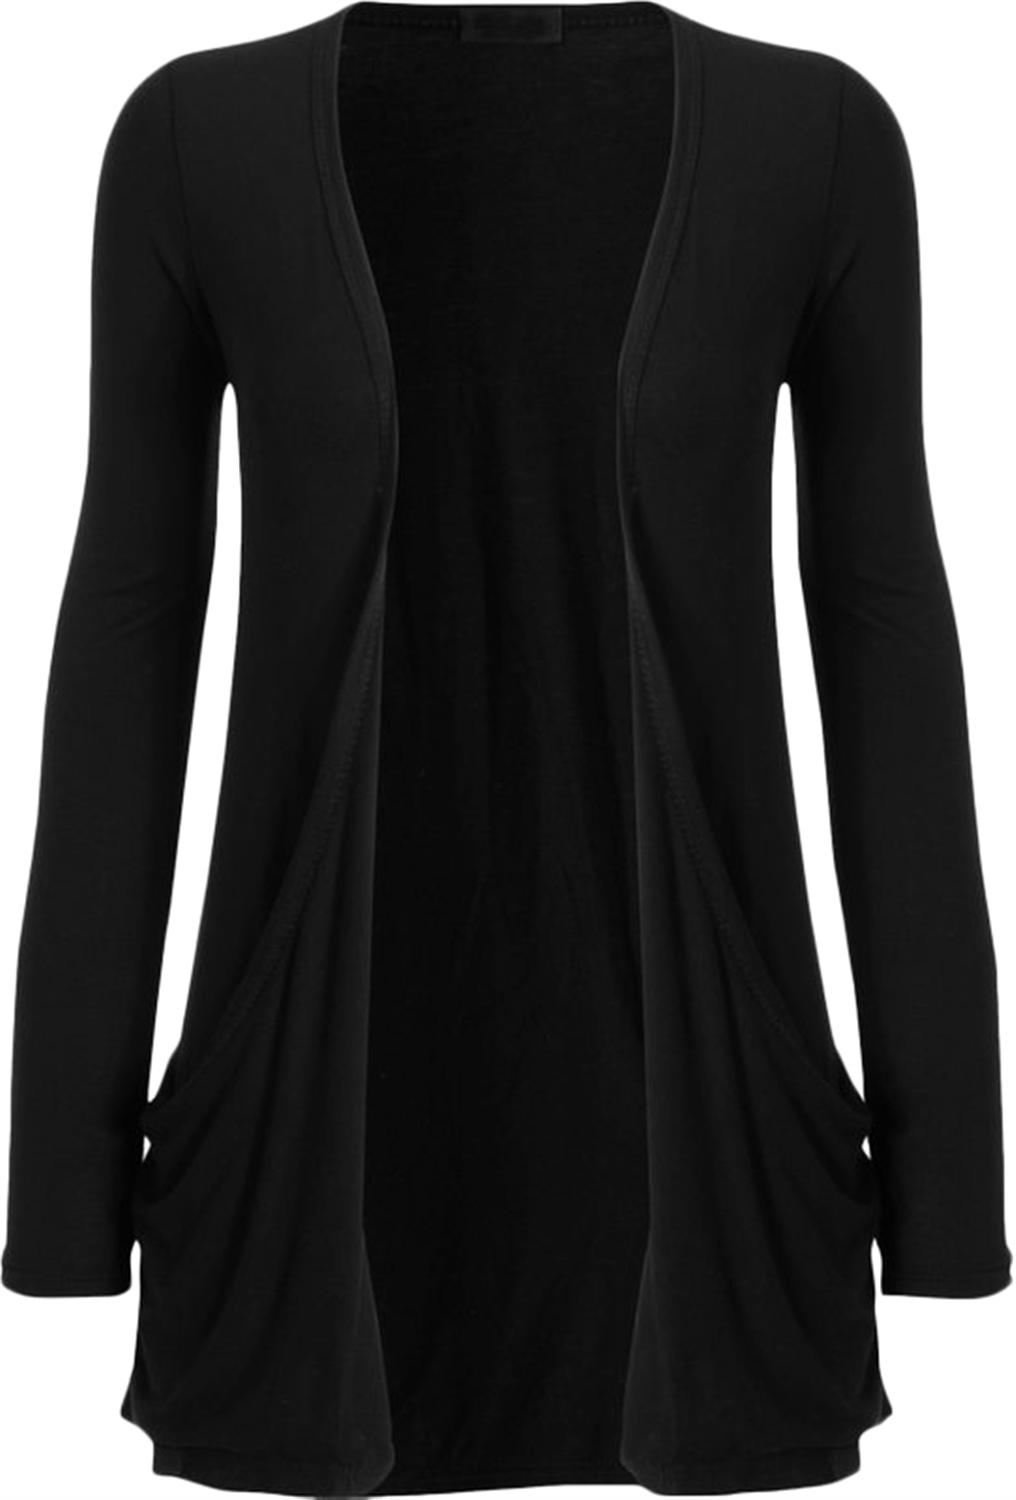 Clothes Ladies Women Boyfriend Open Cardigan Pockets (L-XL, Black)